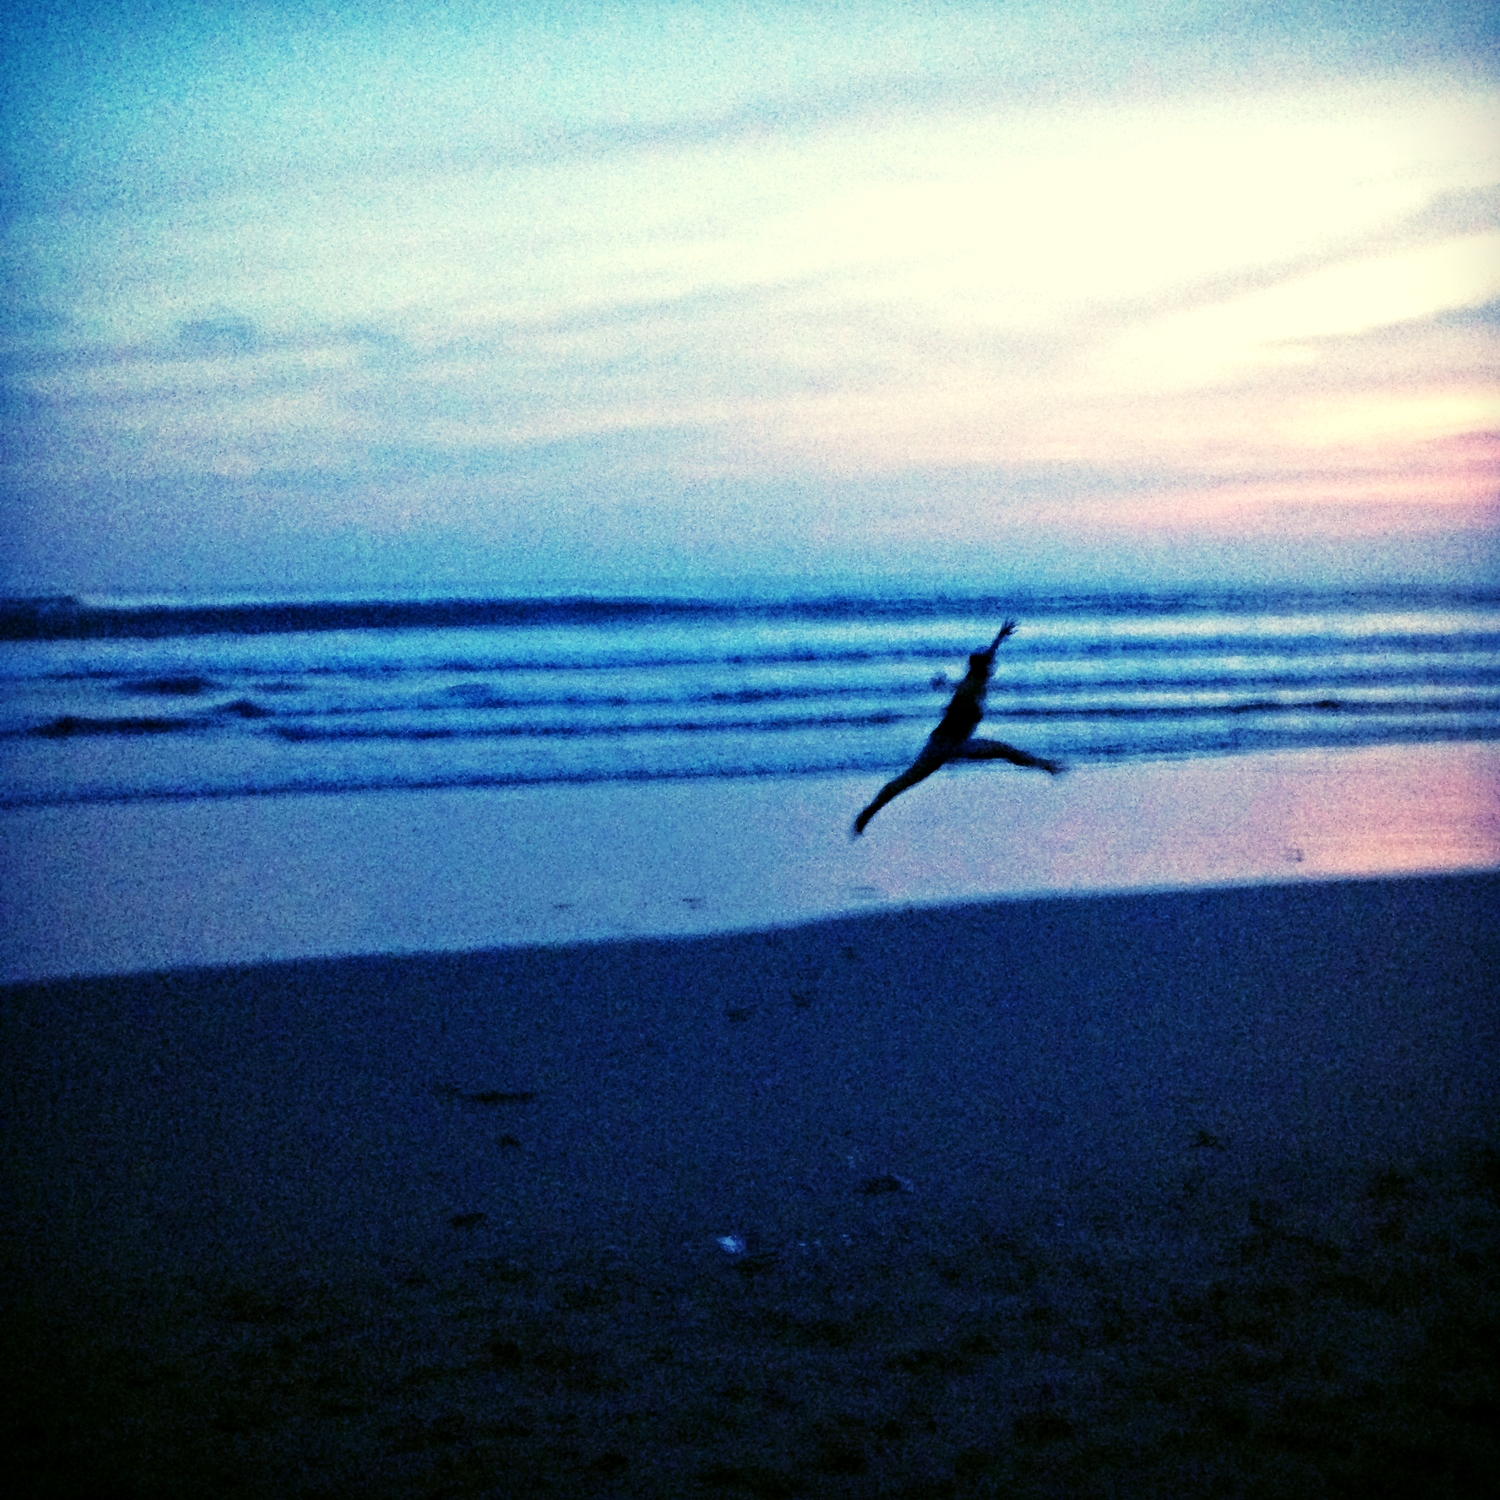 there is so much beauty in freedom.